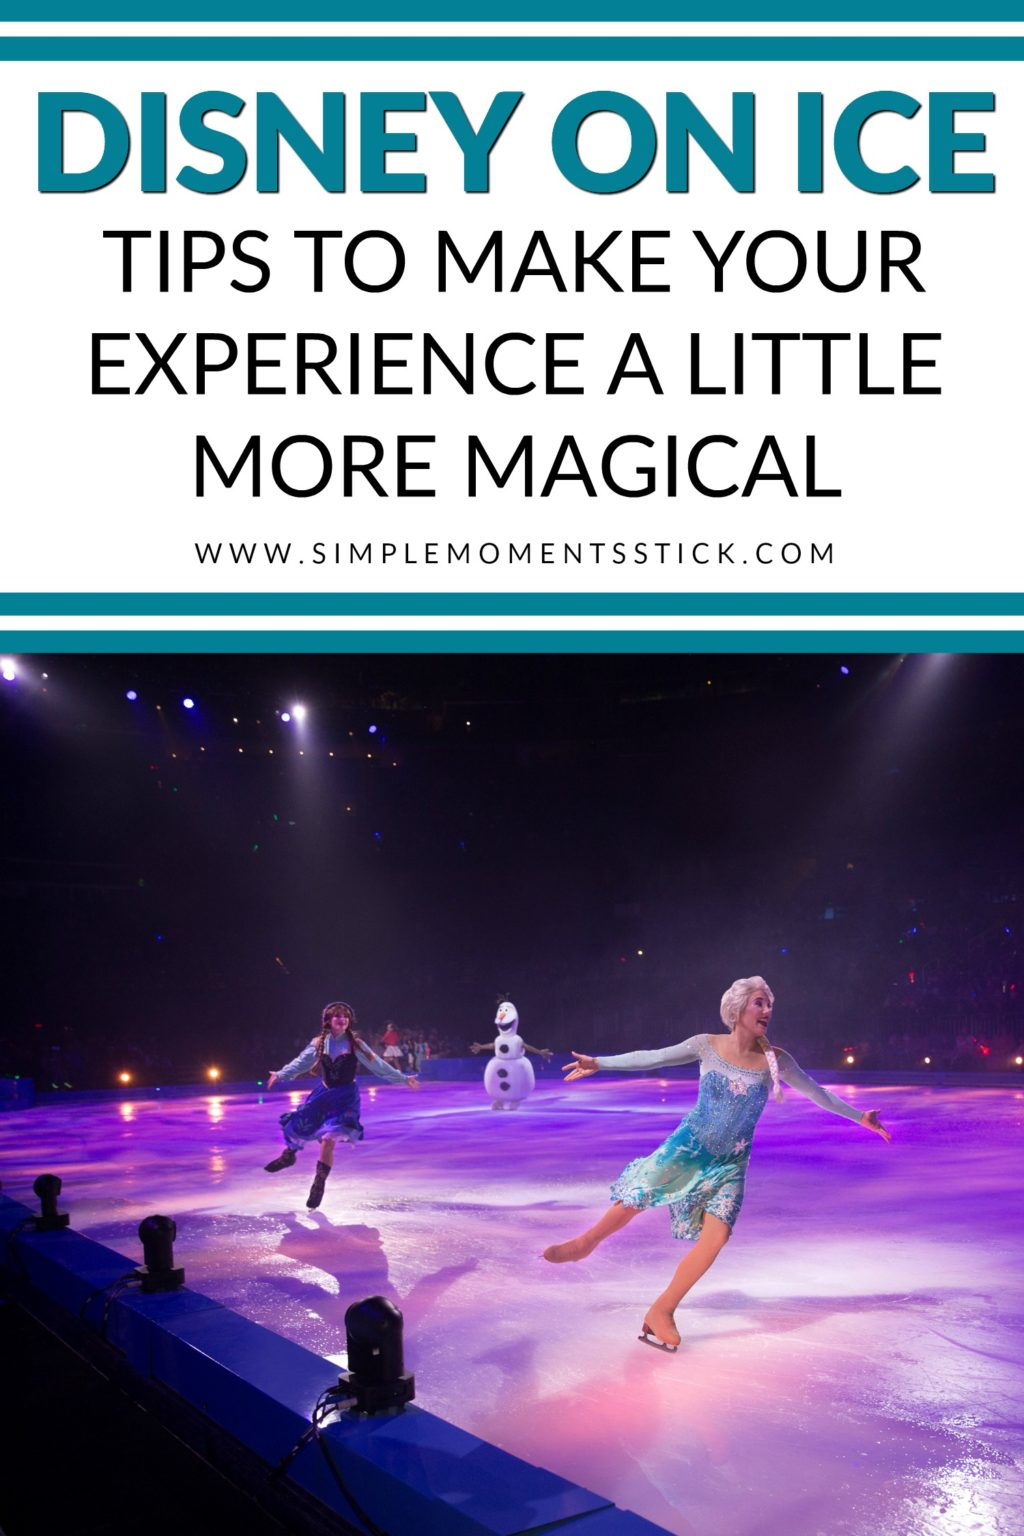 Disney on Ice Mickey's Search Party. Disney on Ice Tips. Disney on Ice with Kids. How to save money at Disney on Ice #Disney #DisneyonIce #Frozen #MickeyMouse